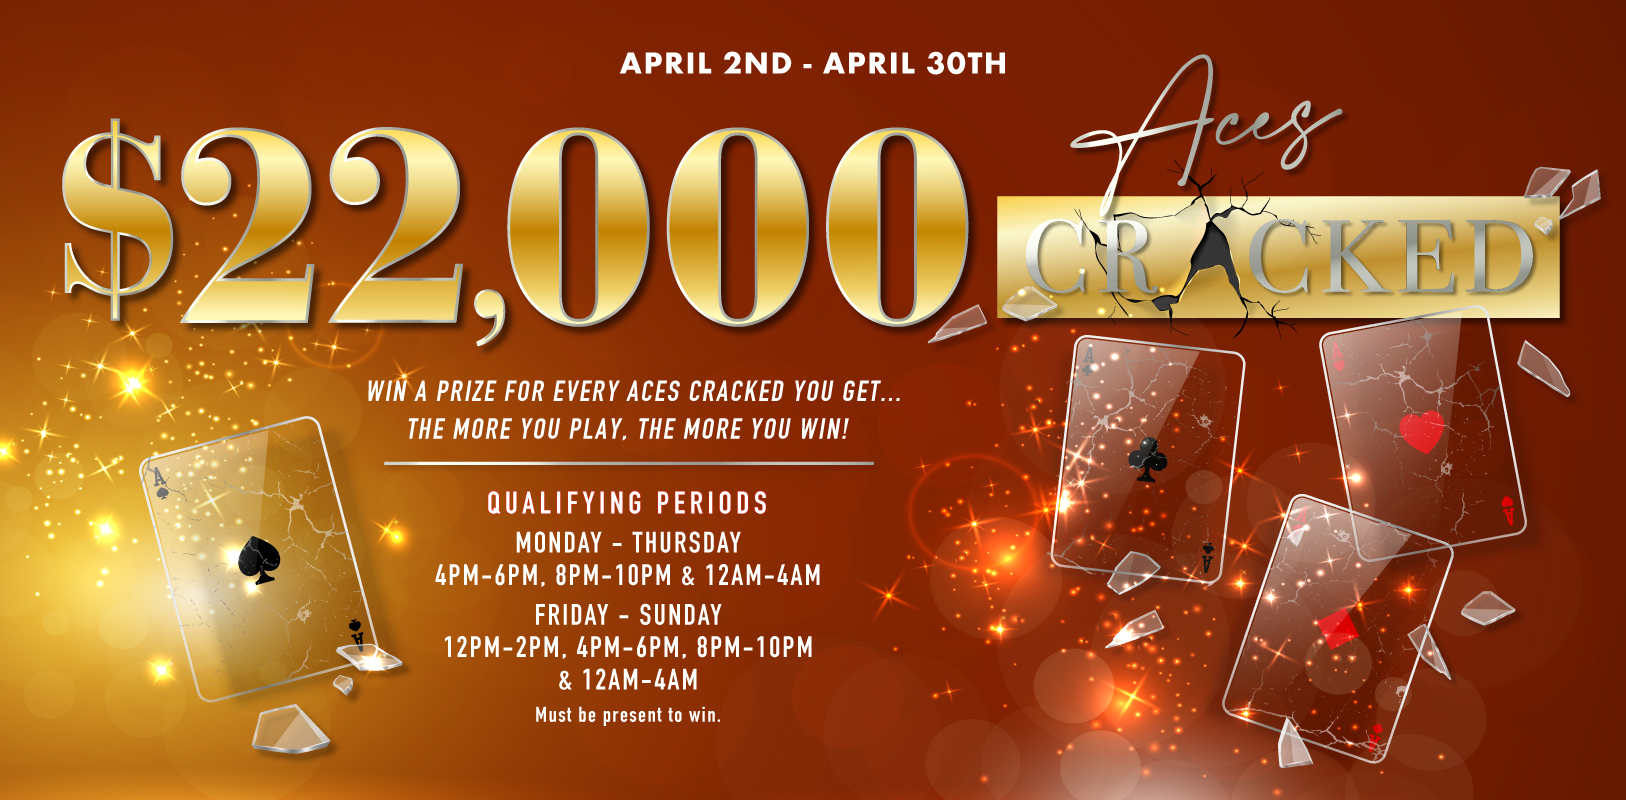 $22,000 Aces Cracked April 2nd-April 30th Qualifying Periods Monday-Thursday 4pm-6pm, 8pm-10pm & 12am-4am. Friday-Sunday 12pm-2pm, 4pm-6pm, 8pm-10pm & 12am-4am. Must be present to win. Win a prize for every Aces Cracked you get…the more you play. The more you win!